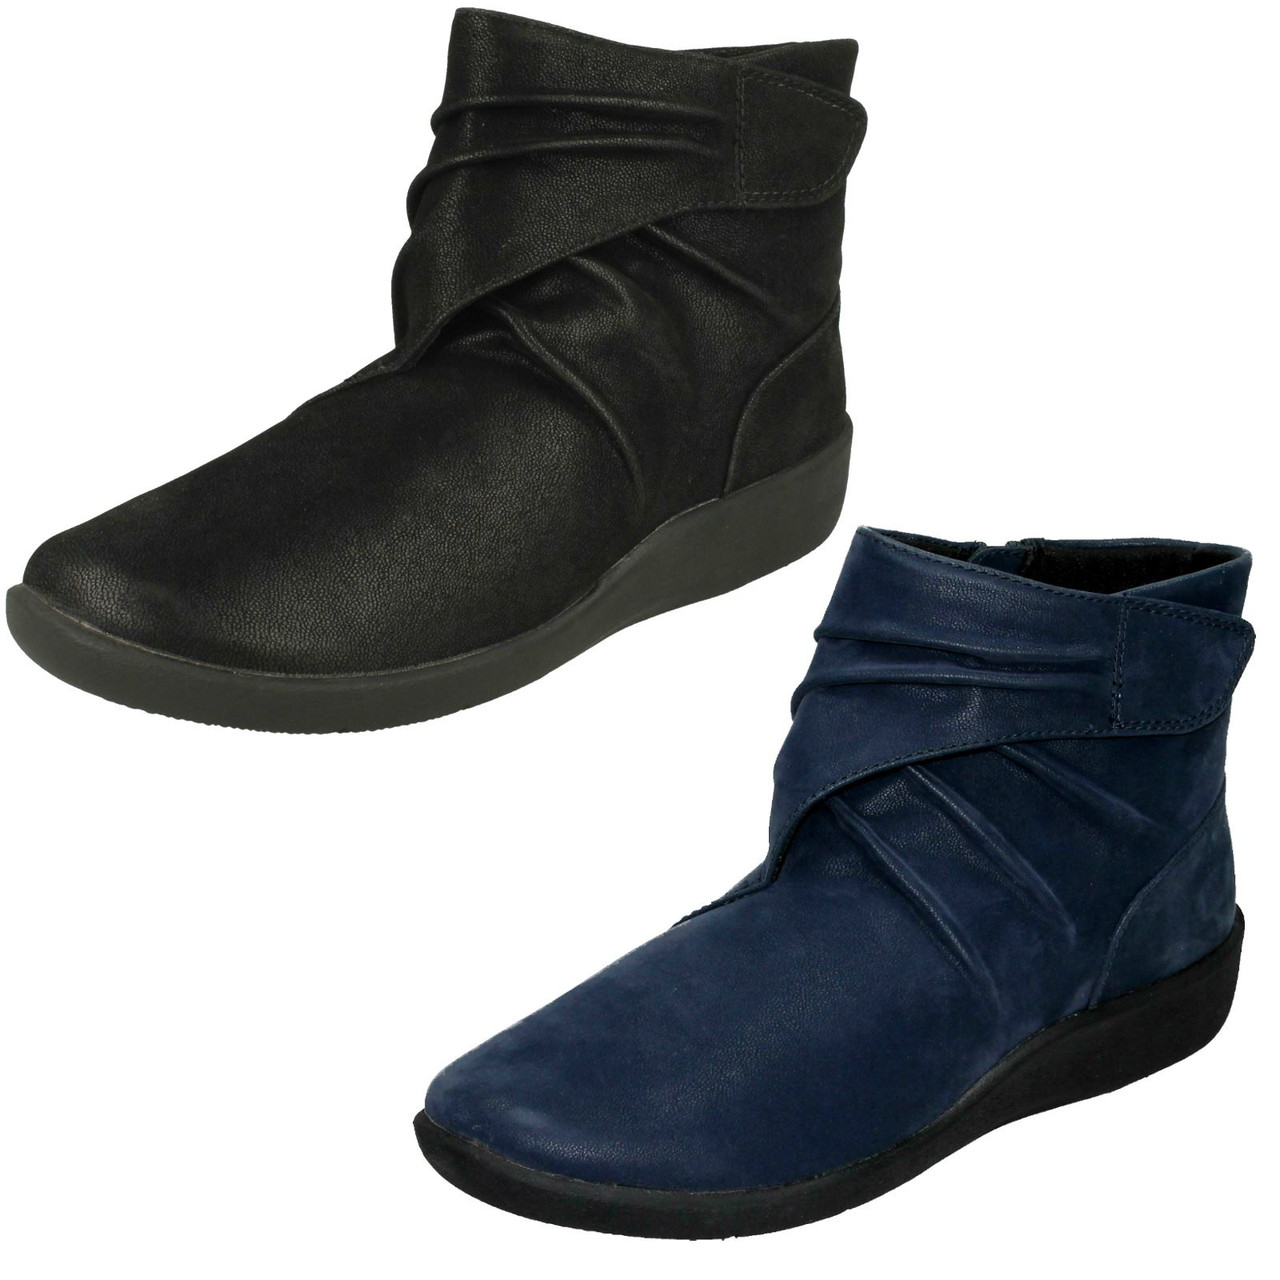 Ladies Clarks Cloud Steppers Ankle